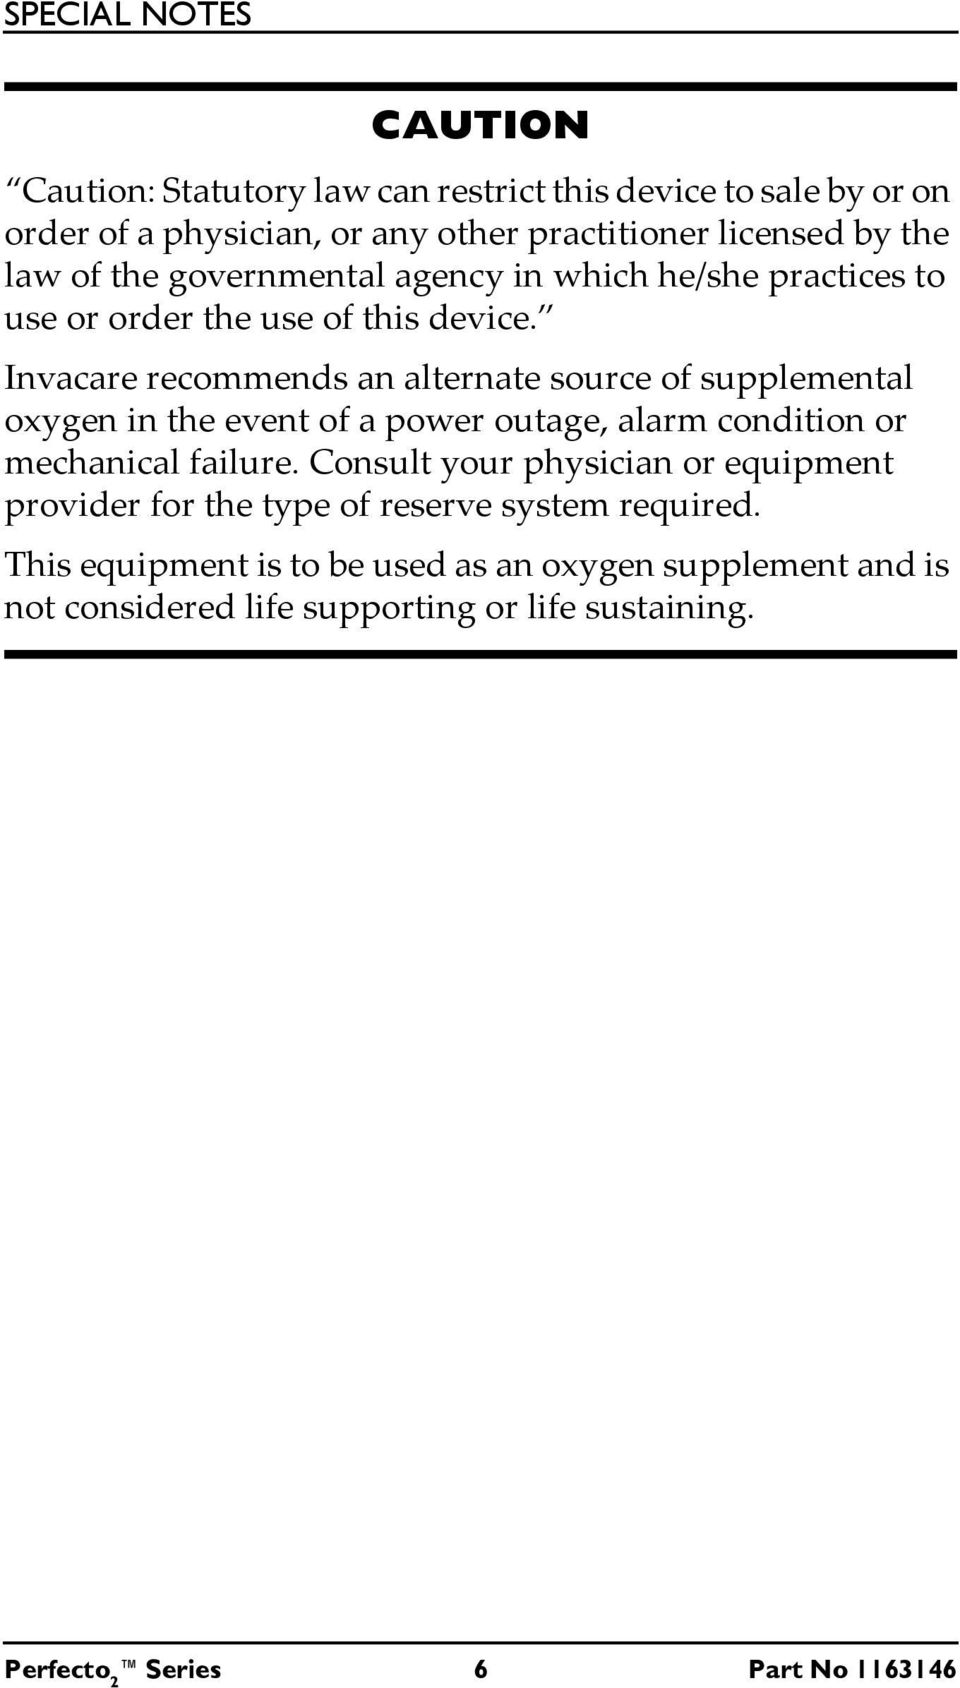 Invacare recommends an alternate source of supplemental oxygen in the event of a power outage, alarm condition or mechanical failure.